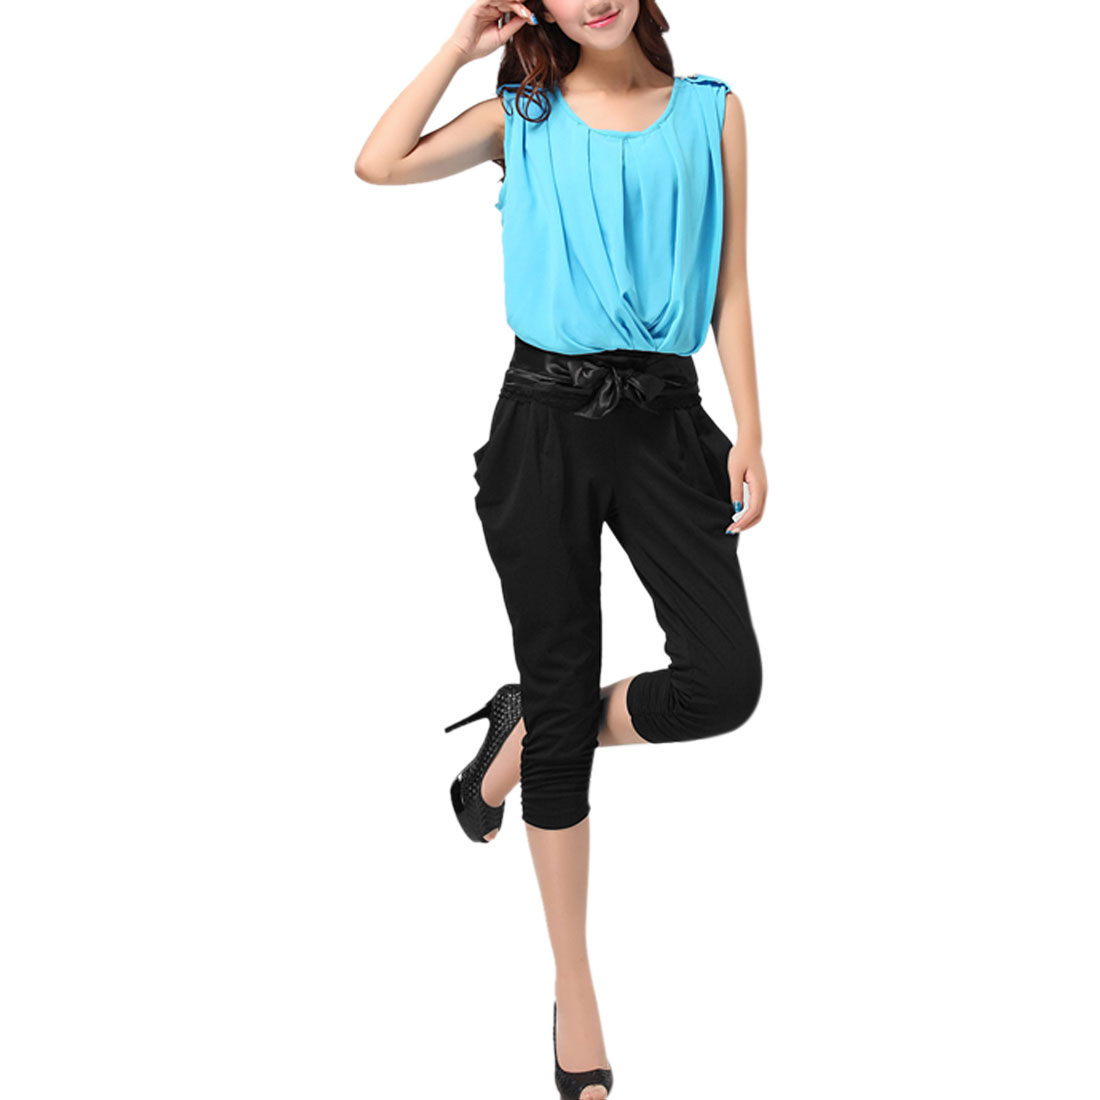 Women Stretch Waist Lace Panel Shirt w Pockets Capris Pants Black Baby Blue XS